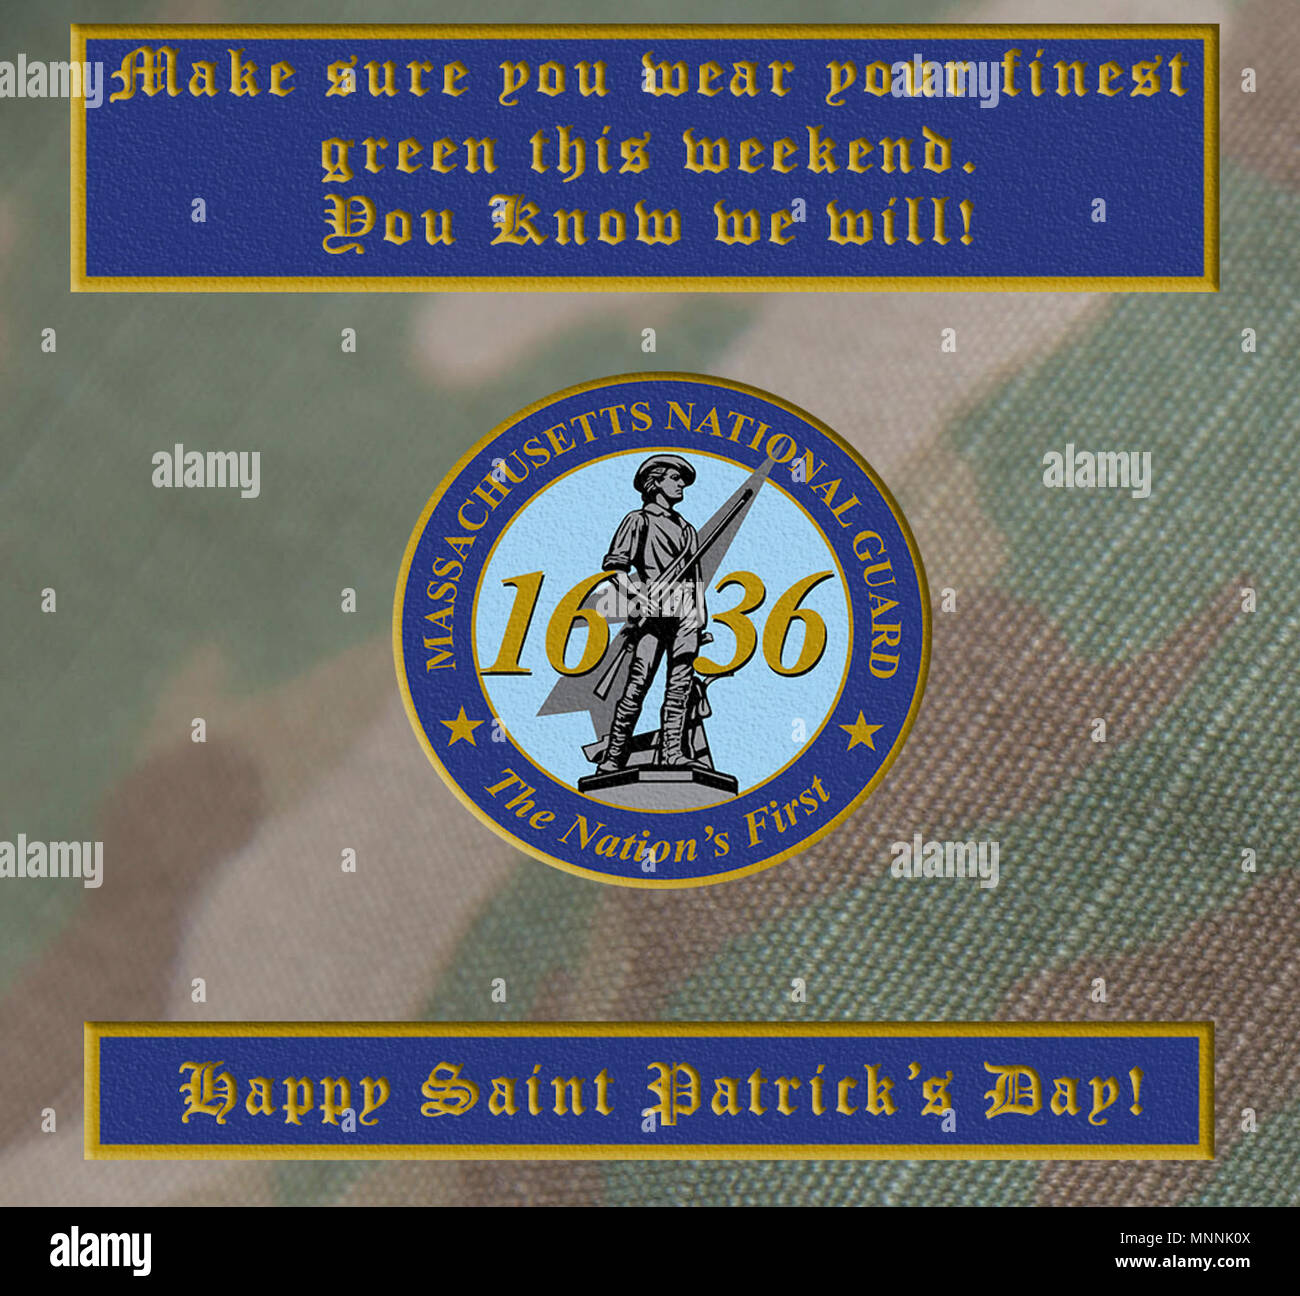 HANSCOM AIR FORCE BASE, Mass. -- Massachusetts National Guard has a heritage of Irish-American's serving within its ranks.  As an organization, we celebrate their contribution this Saint Patrick's Day.  Army illustration Stock Photo